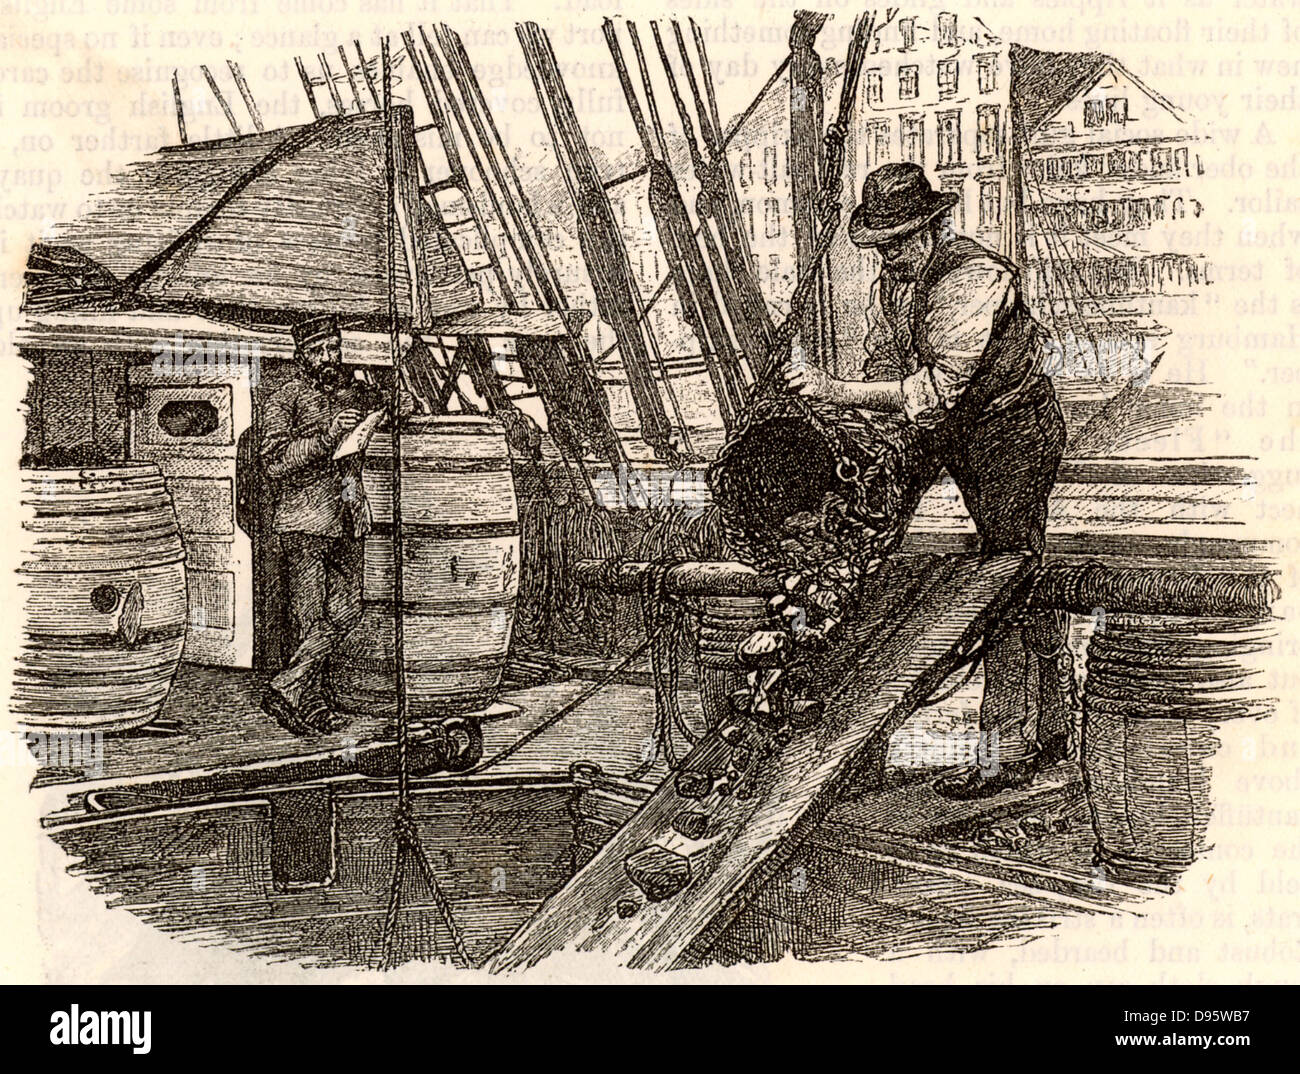 Coaling a boat, Hamburg, Germany. Steam ships had to carry enough coal in their holds to power their engines until - Stock Image